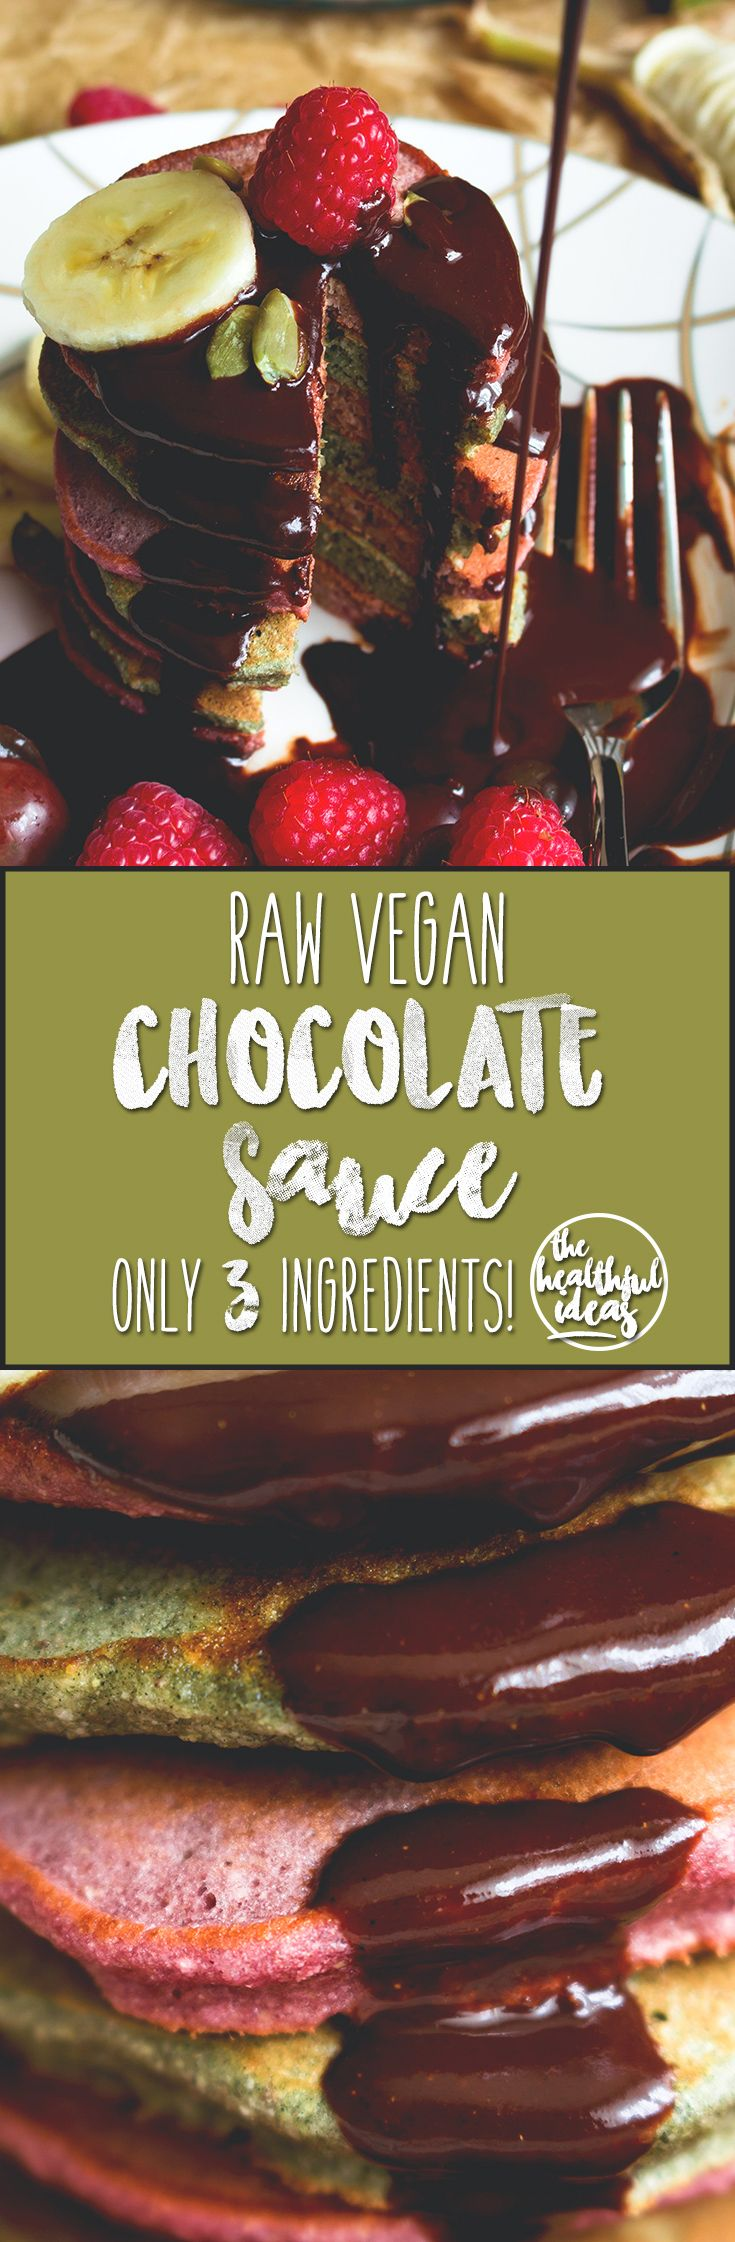 Raw Chocolate Sauce - delicious vegan alternative to unhealthy chocolate sauce. I LOVE this recipe! It's sweet and chocolatey and actually good for you. It's easy to make too! 3 INGREDIENTS ONLY! | thehealthfulideas.com